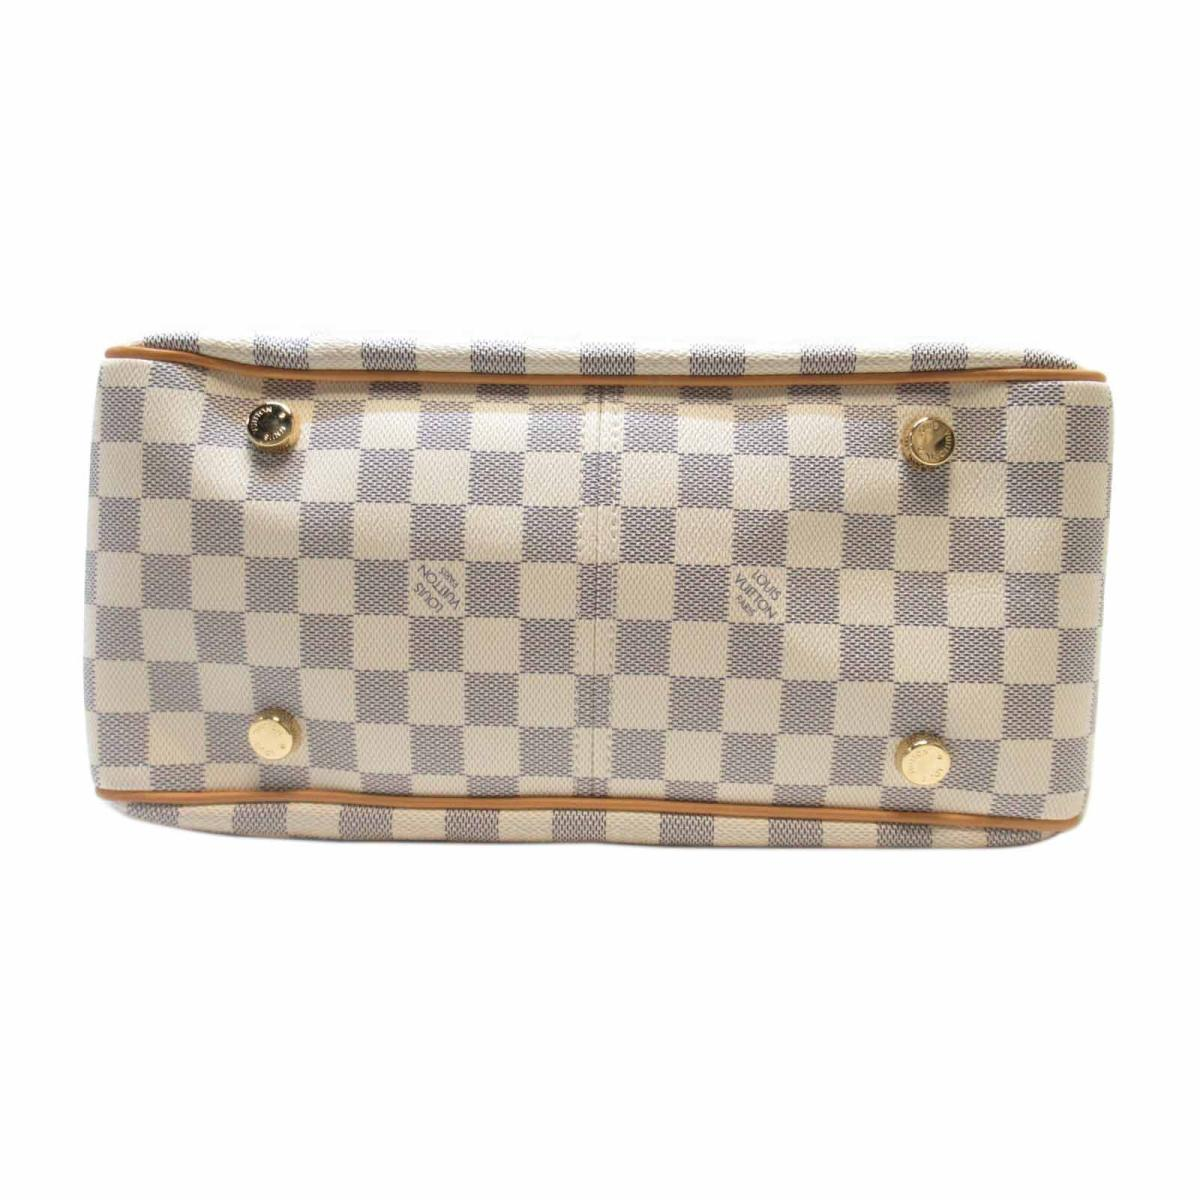 LOUIS VUITTON LV 路易威登 LOUIS VUITTON LV 路易威登 バッグ N41176 白棋盤格肩背包 Figheri PM N41176